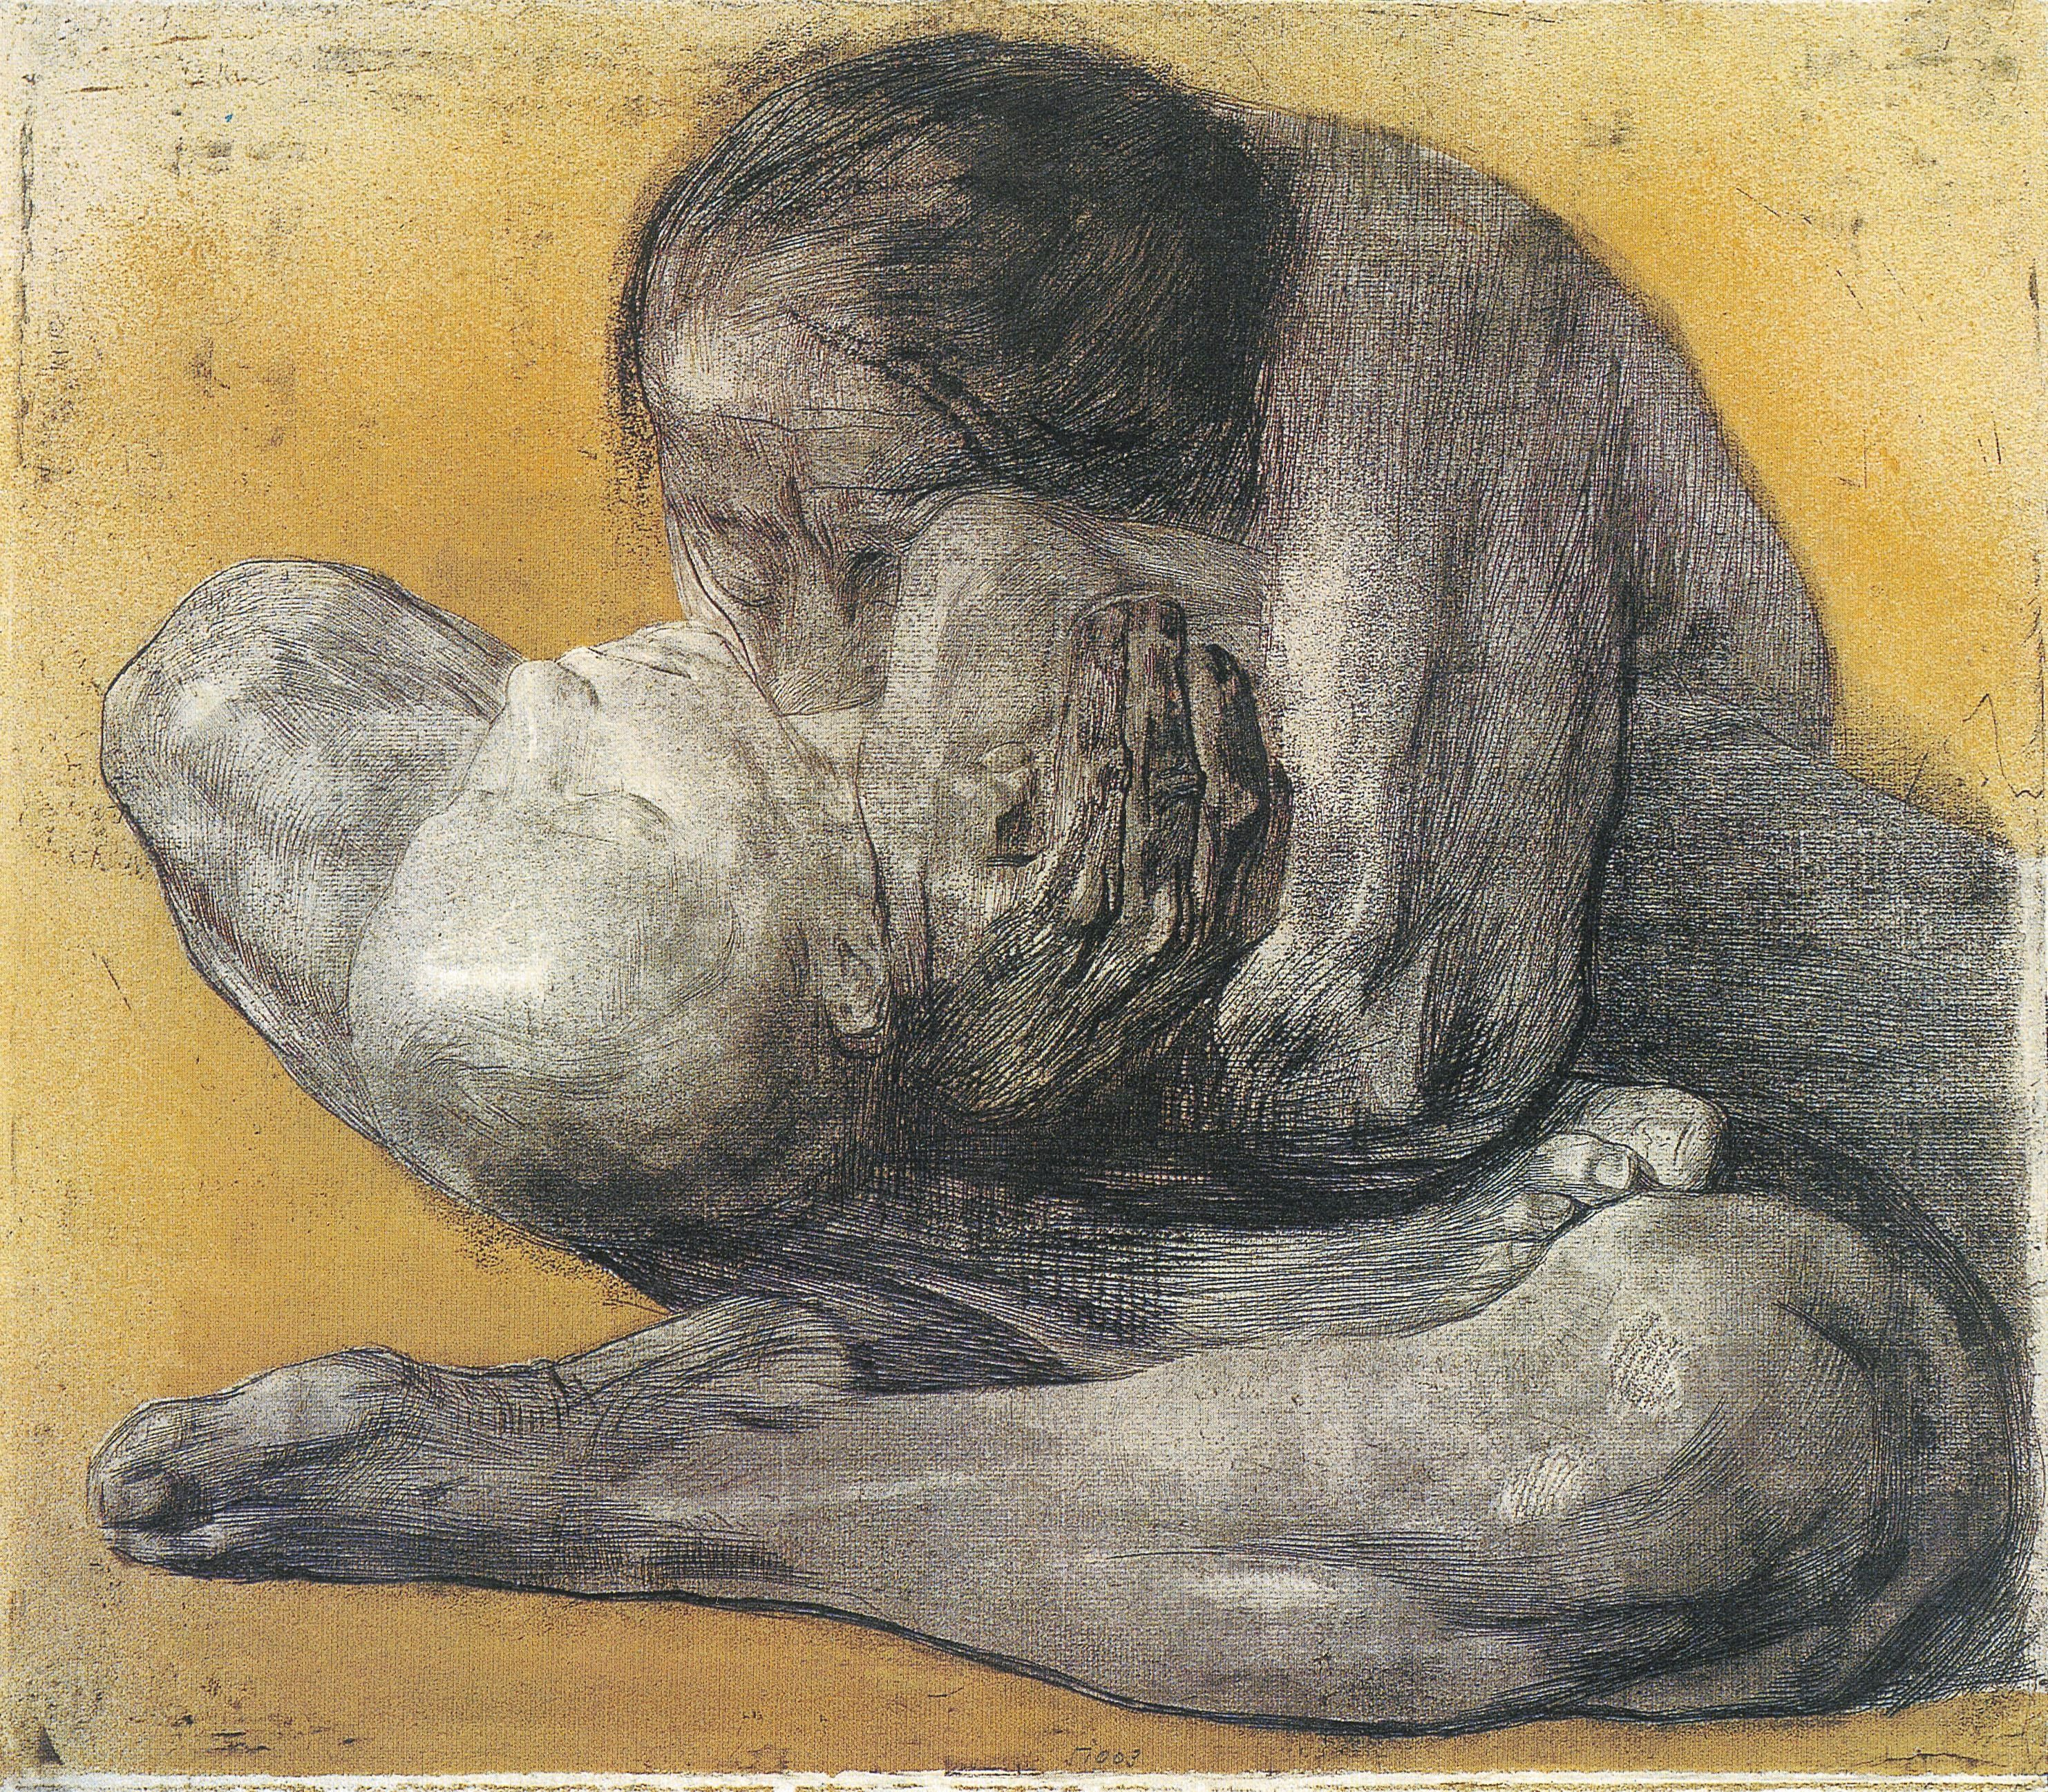 Woman With Dead Child:  A 1903 etching by Kathe Kollwitz.